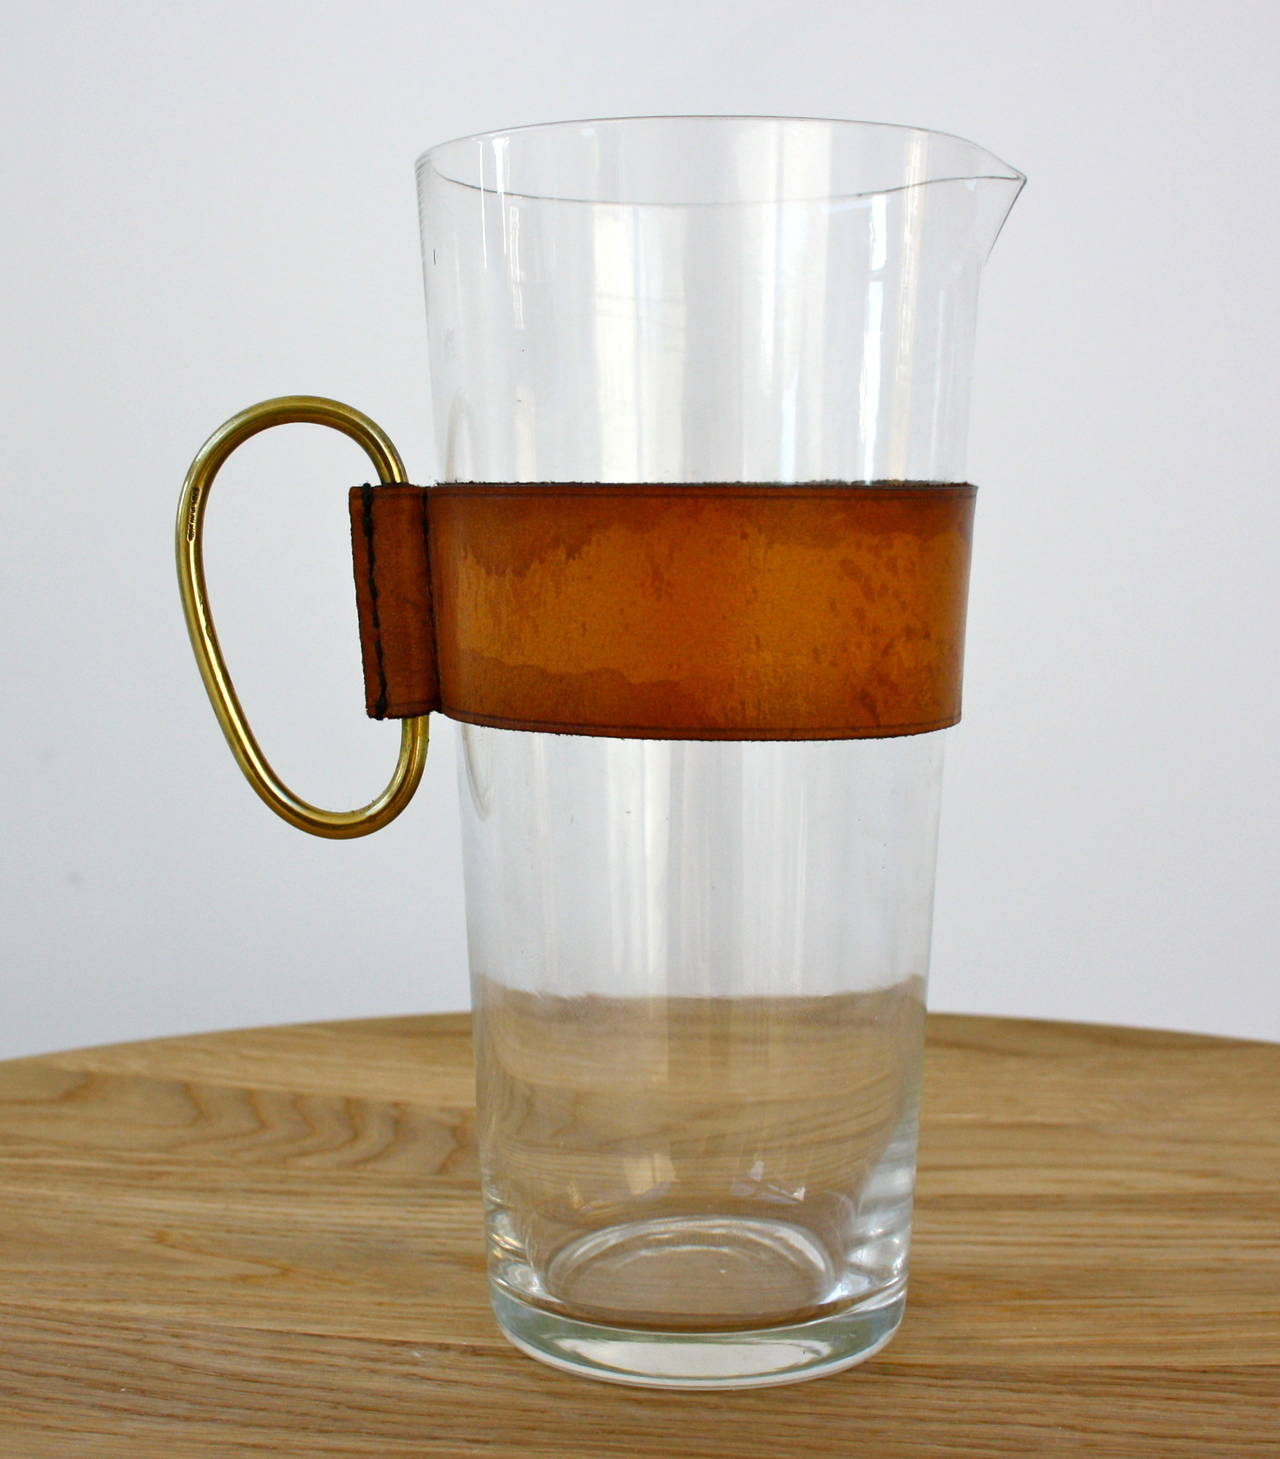 Glass, leather and brass pitcher by Carl Auböck. Made in his workshop in central Vienna.